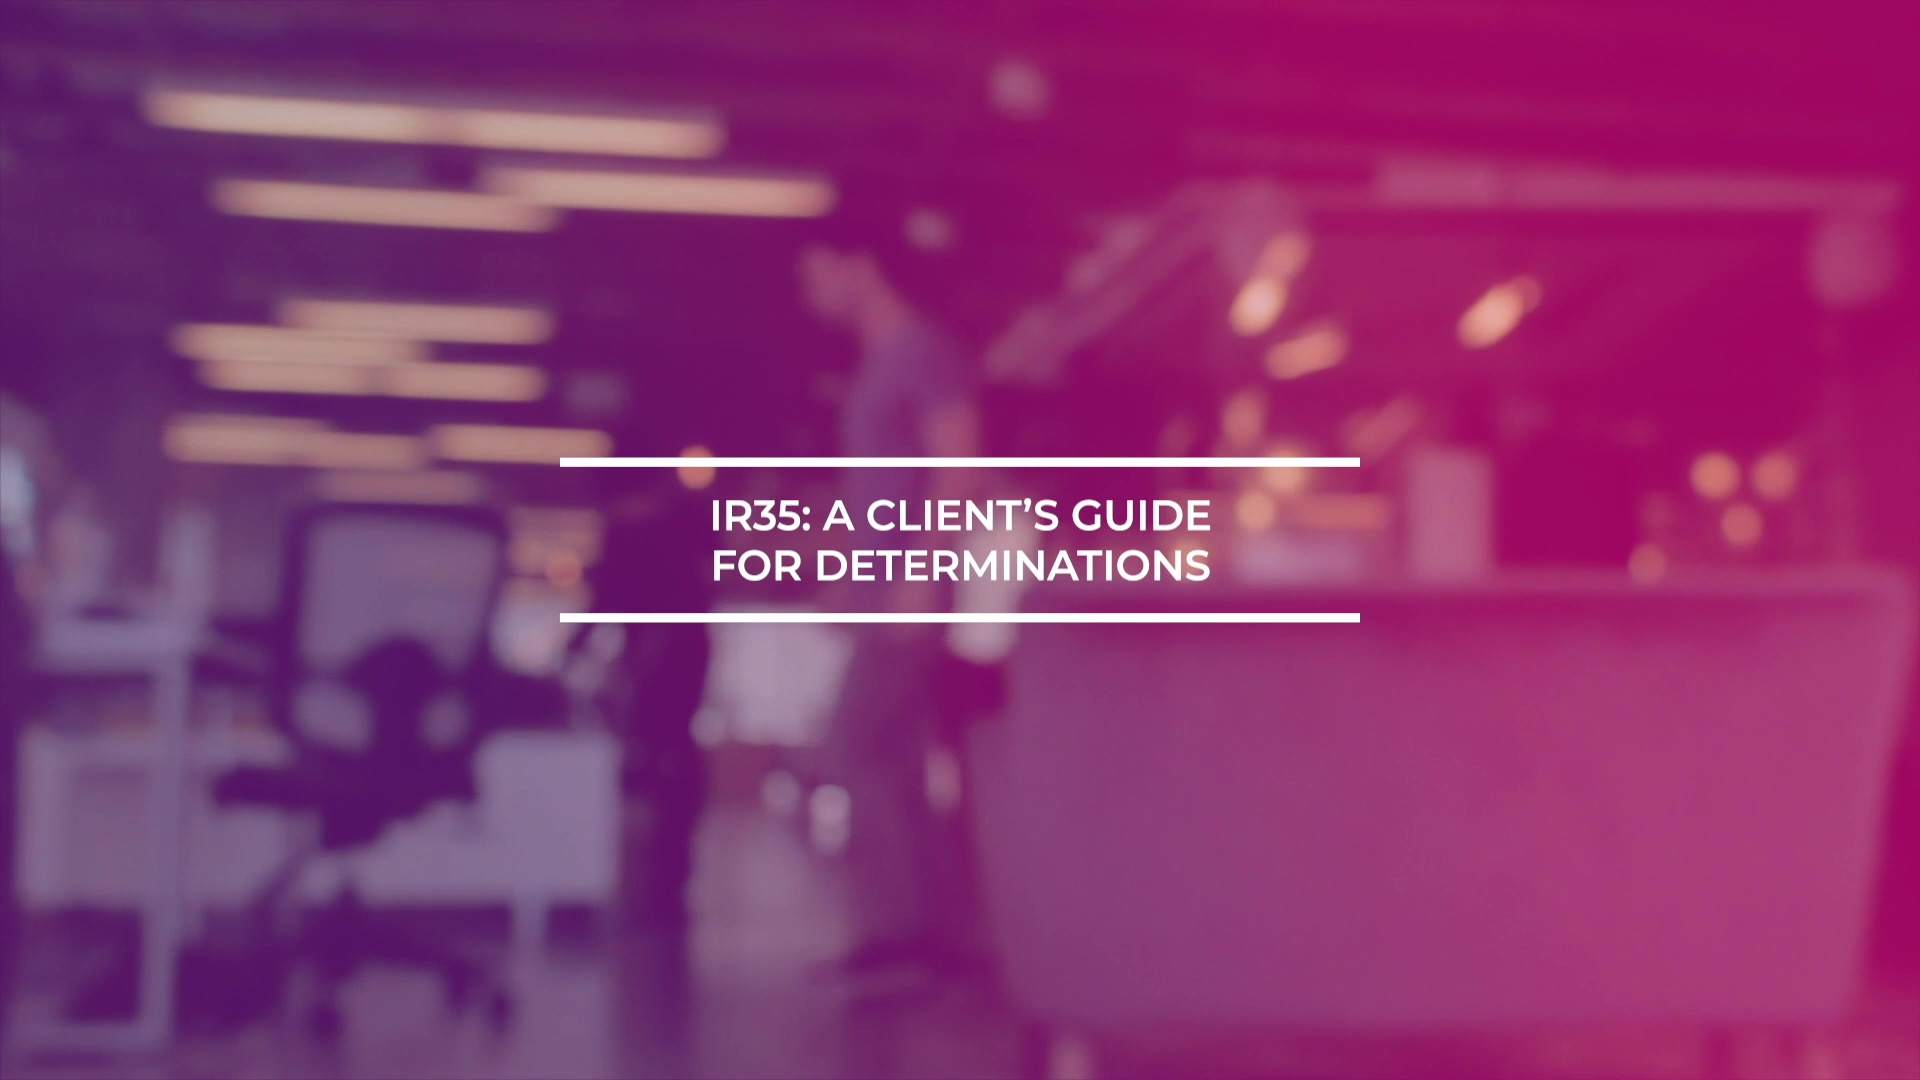 IR35 - A Clients Guide For Determinations